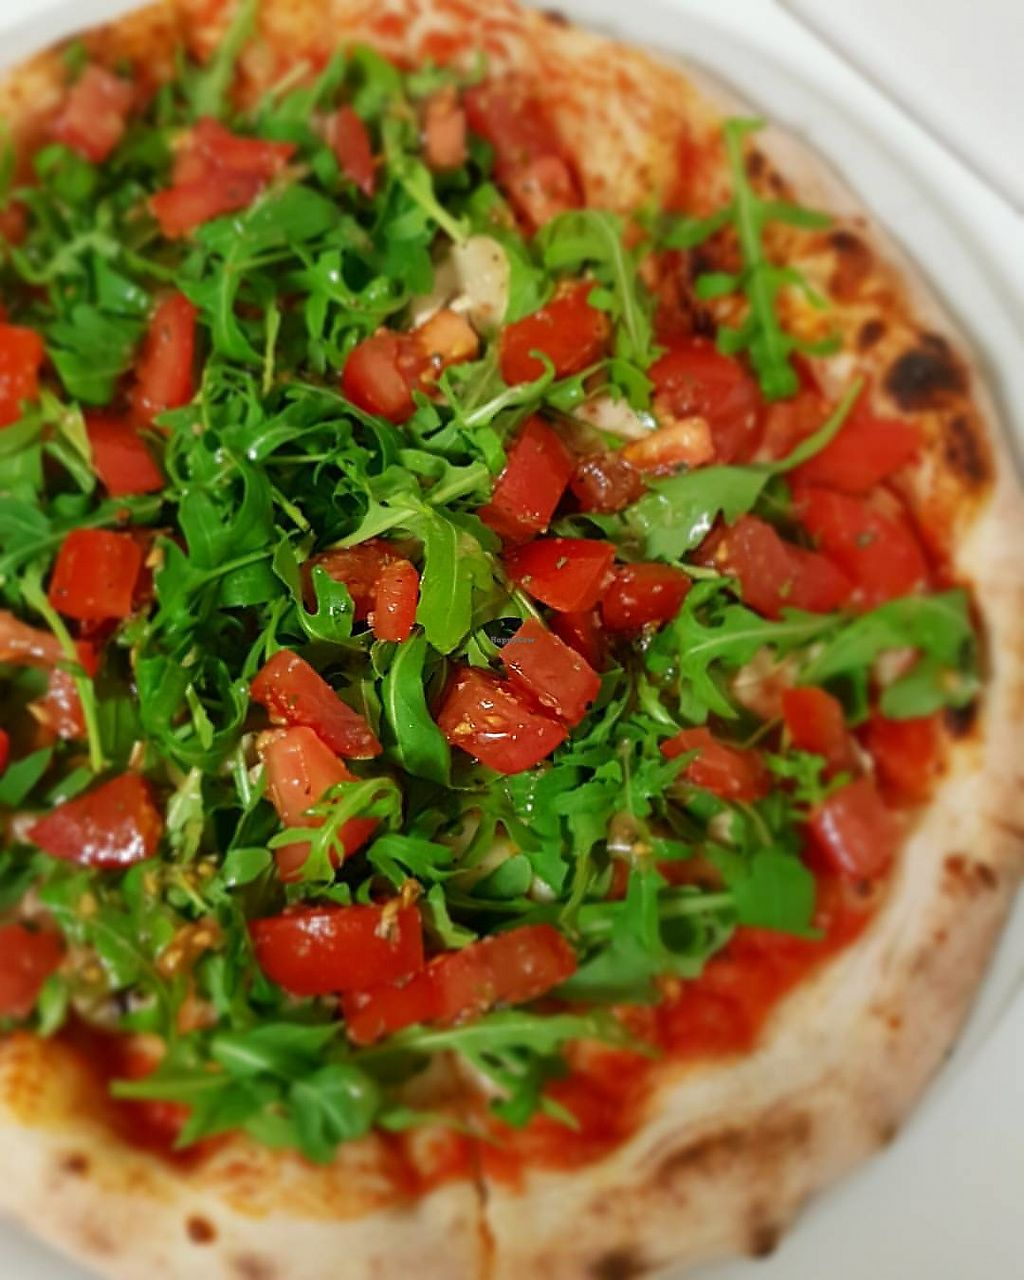 """Photo of Pas Francesco  by <a href=""""/members/profile/RokasKoveckis"""">RokasKoveckis</a> <br/>vegan pizza(mushrooms, rucola and tomatoes) <br/> December 17, 2017  - <a href='/contact/abuse/image/107406/336421'>Report</a>"""